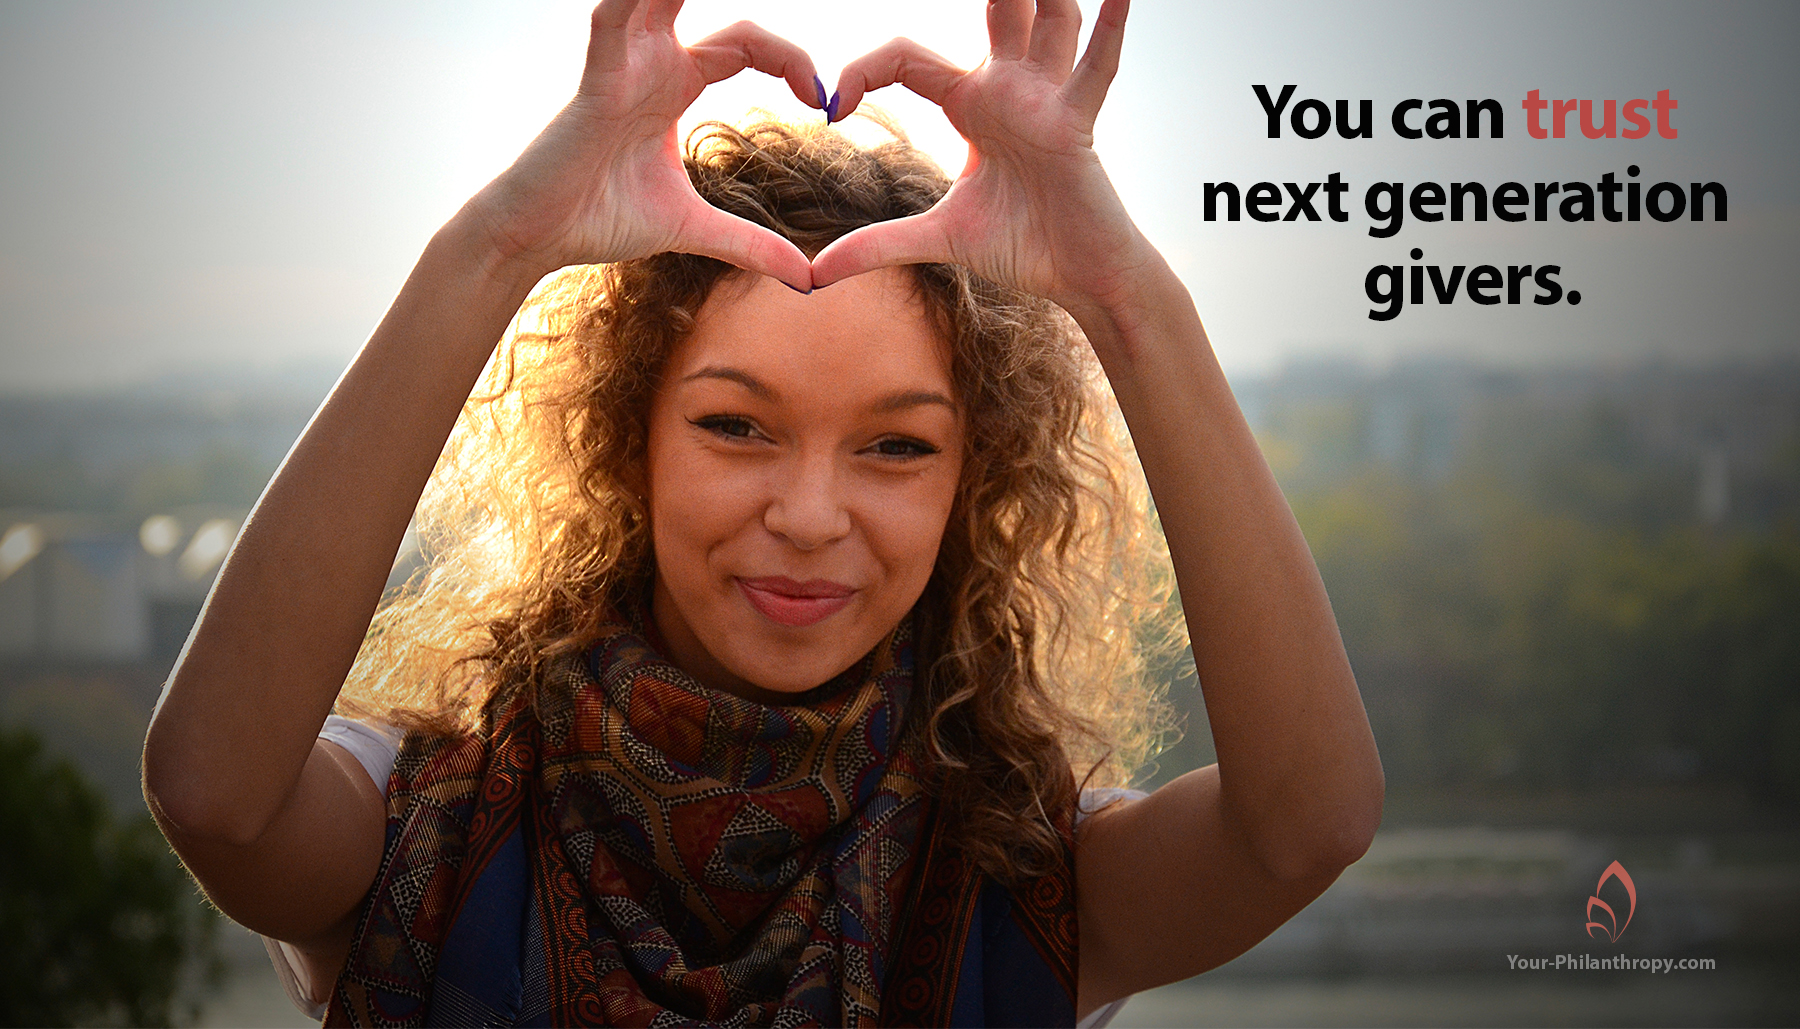 Trust Next Generation Givers